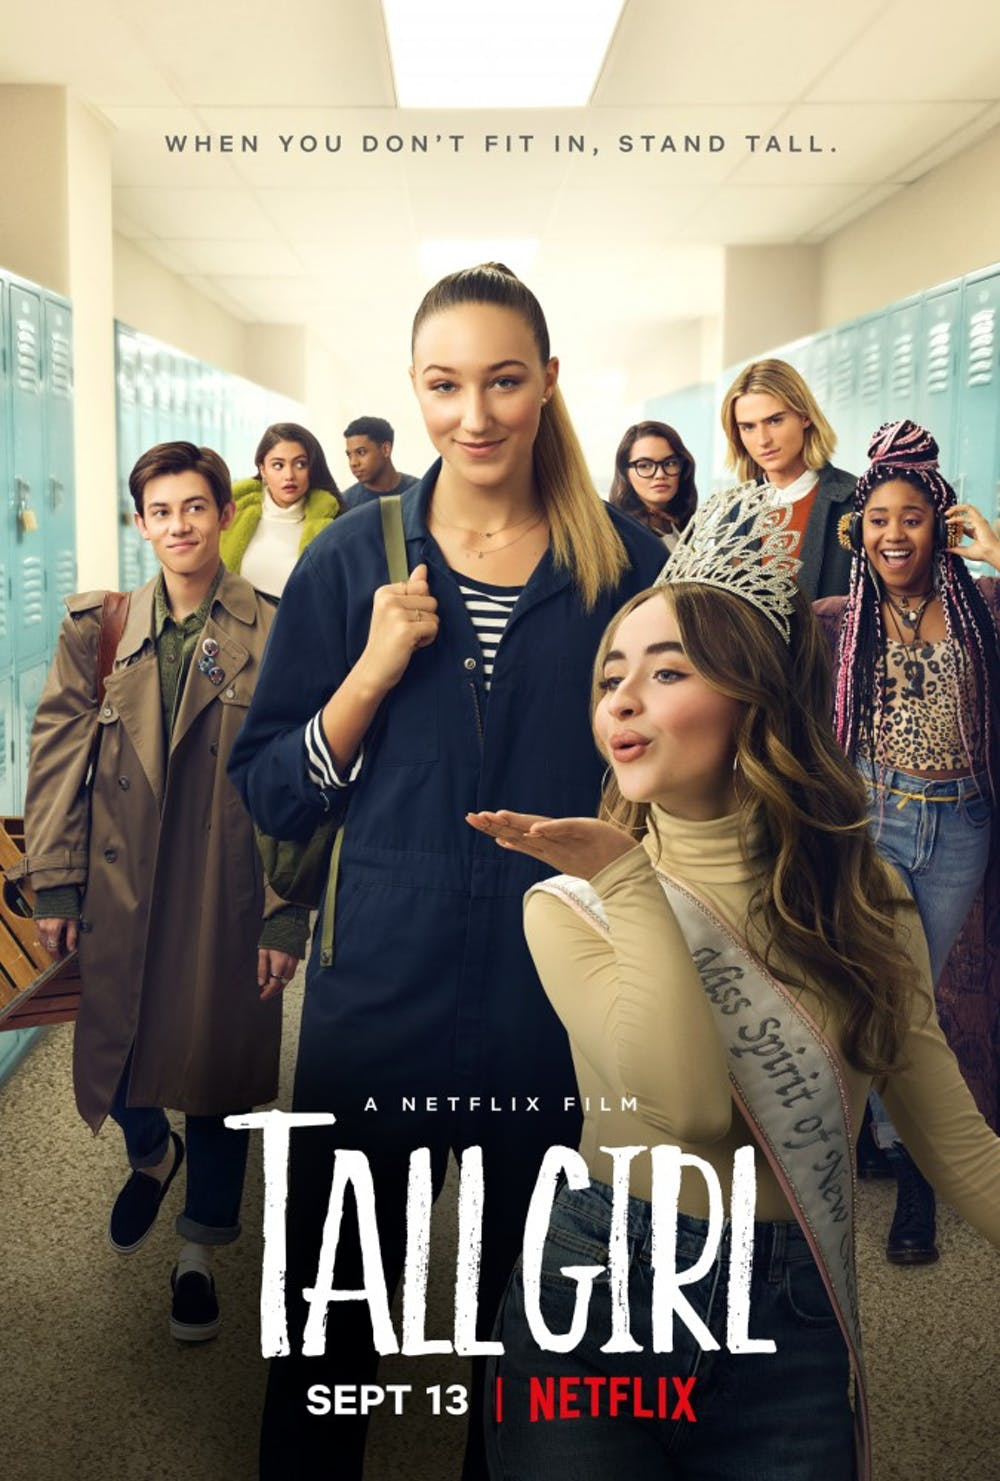 Opinion: Tall Girl is a warm, heartfelt comedy sure to take you on a roller coaster of emotions